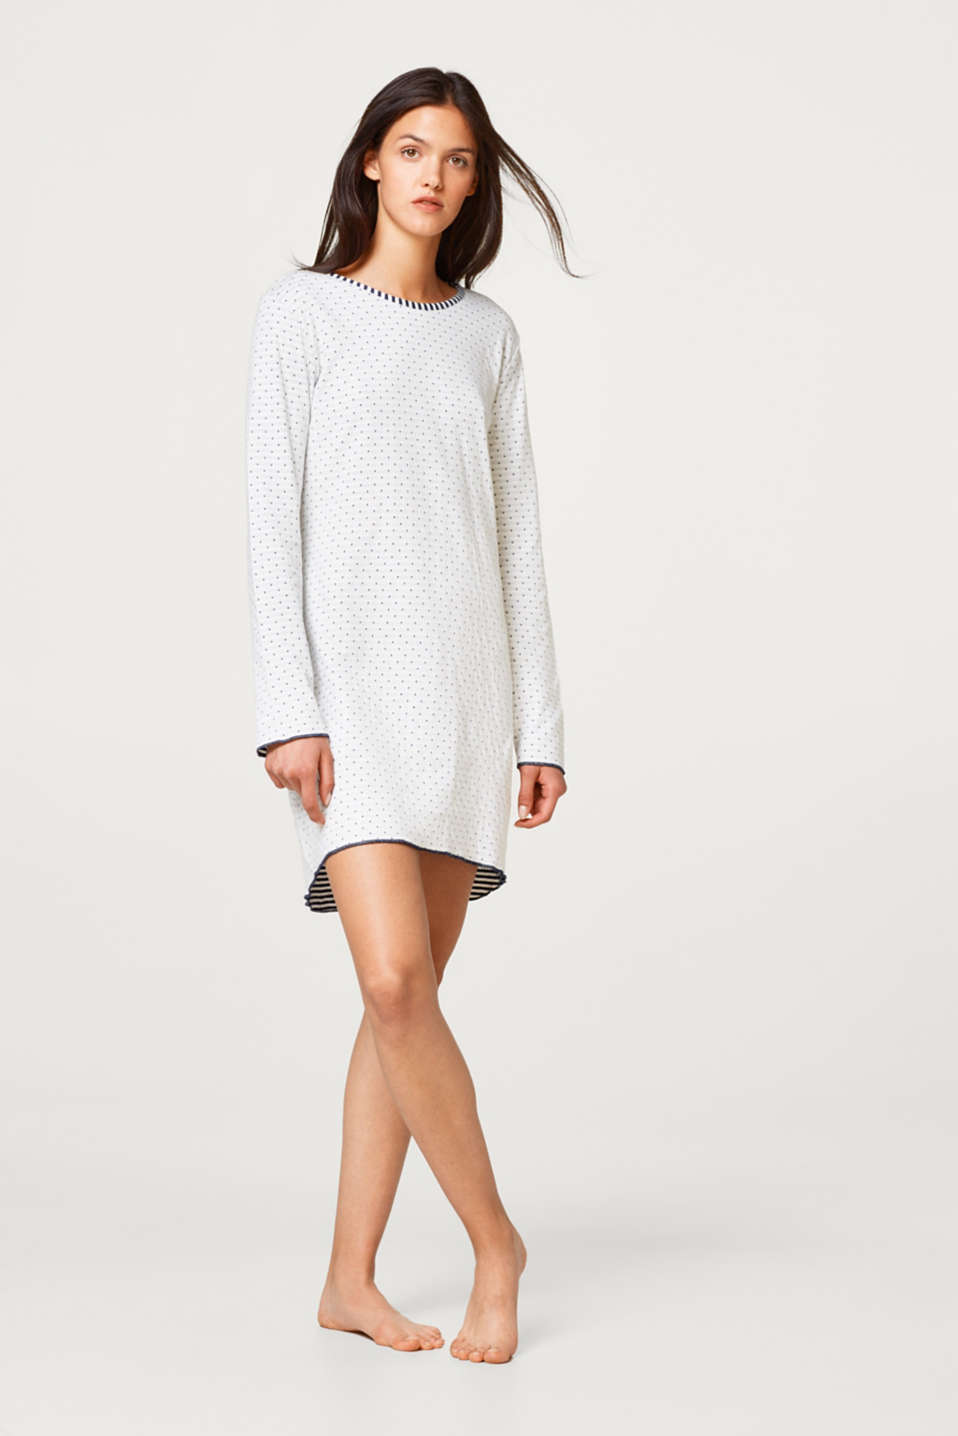 Esprit - Cotton nightshirt made of double-faced jersey